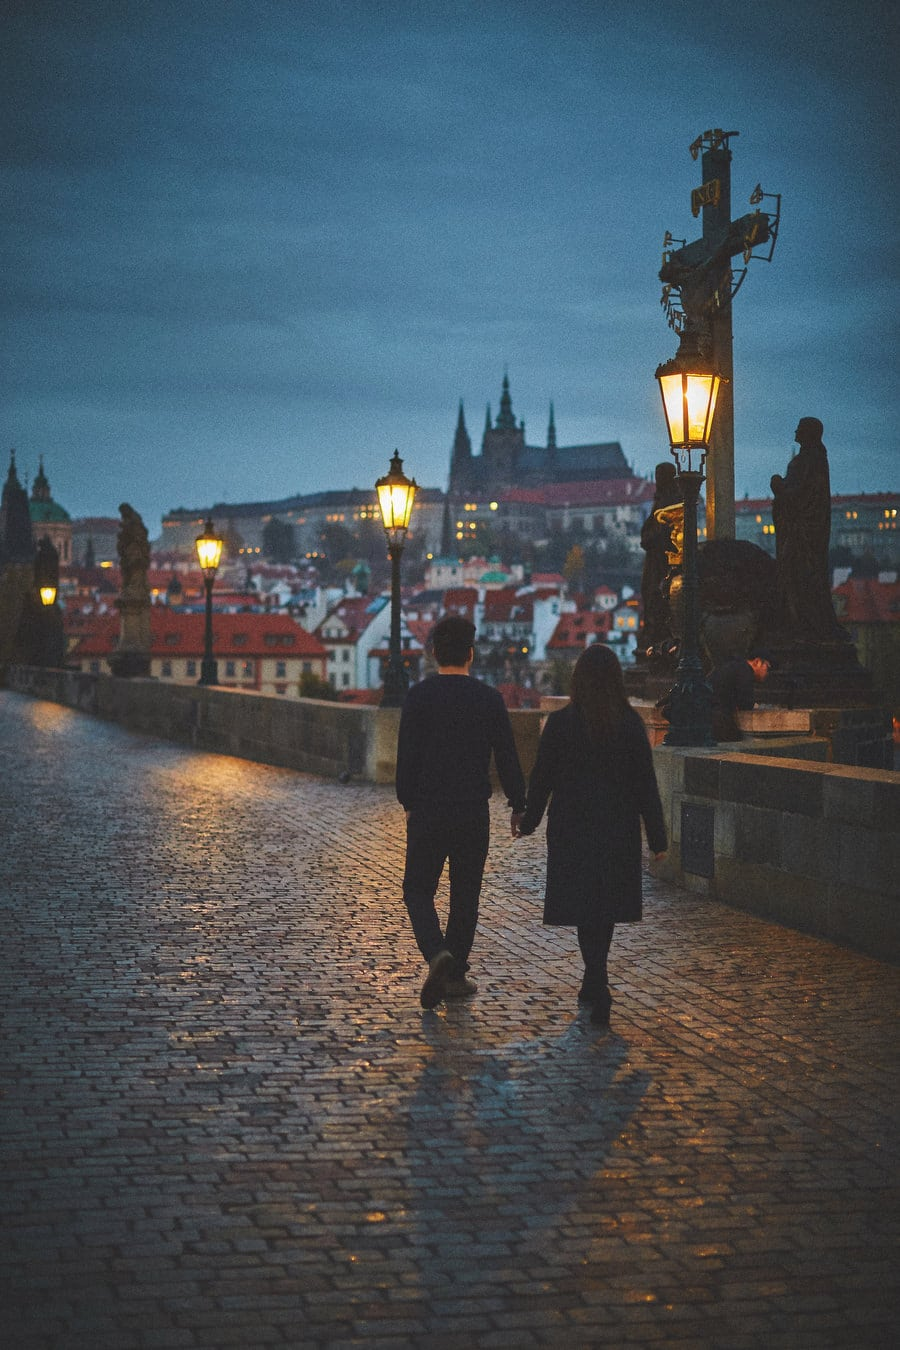 Prague Charles Bridge, dark blue sky, stylish young couple walking wearing black, gas lamps